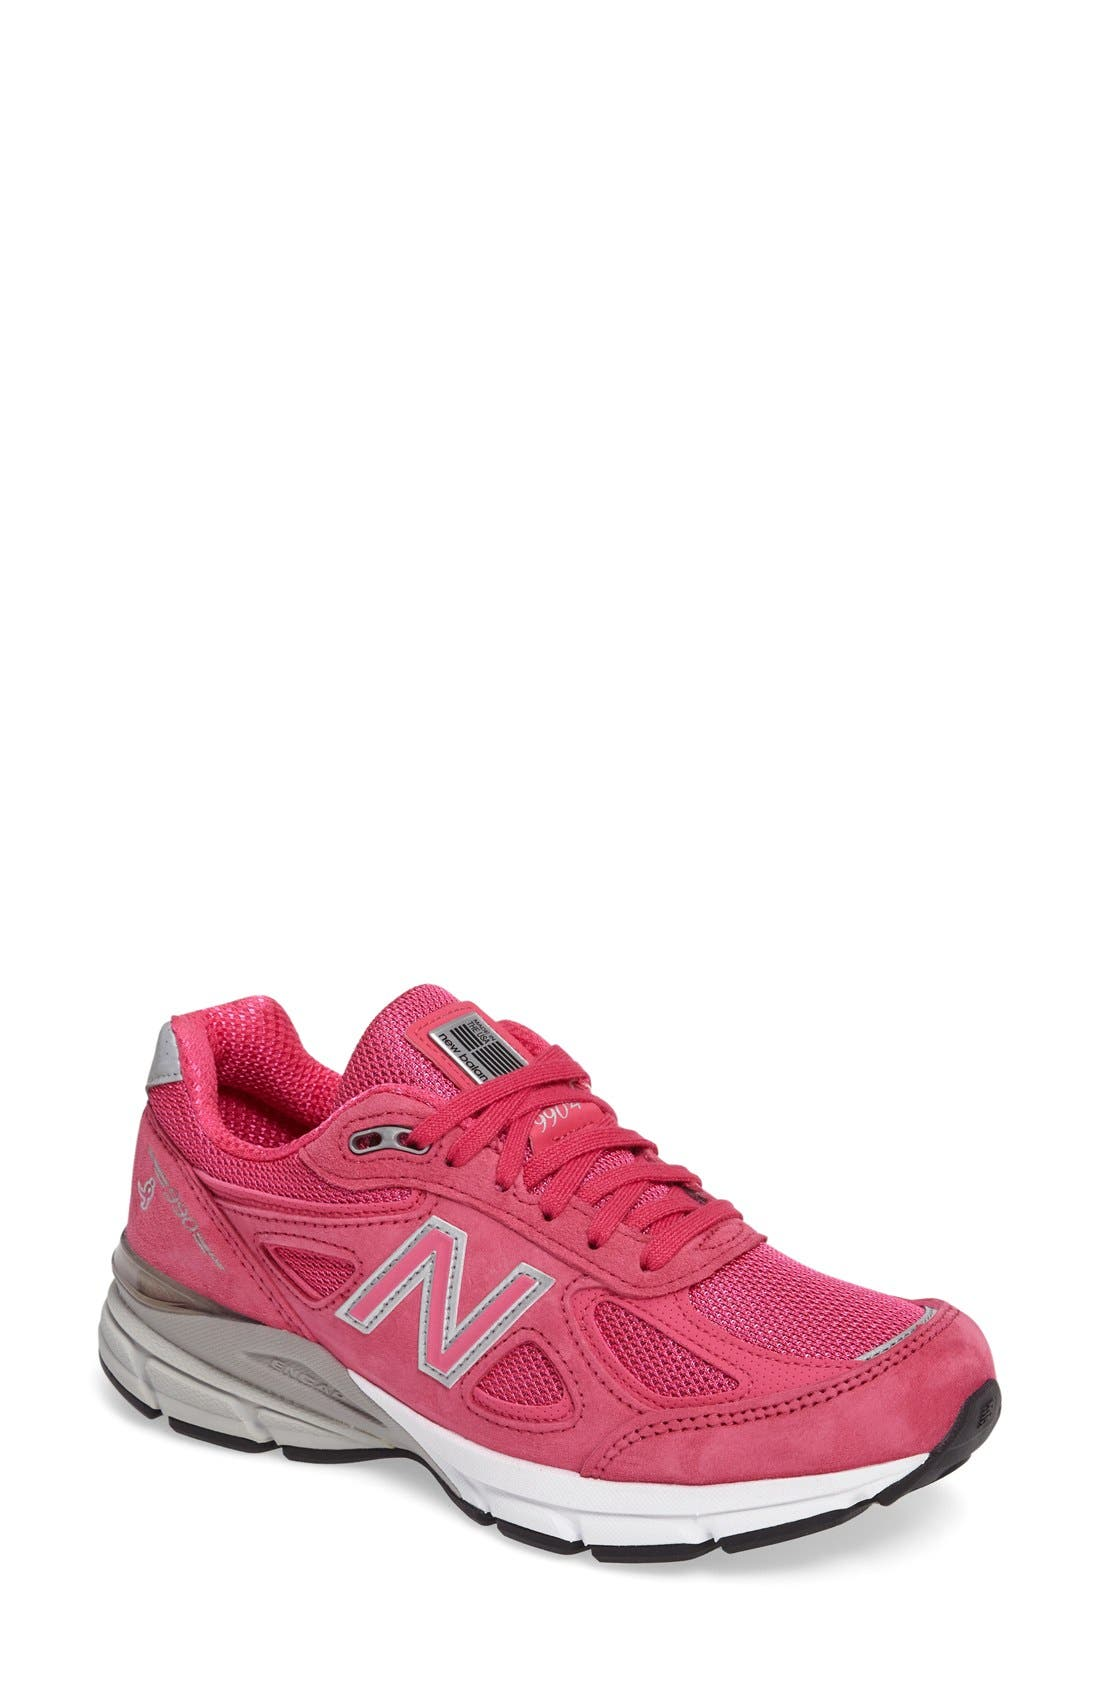 Alternate Image 1 Selected - New Balance '990 Premium' Running Shoe (Women)